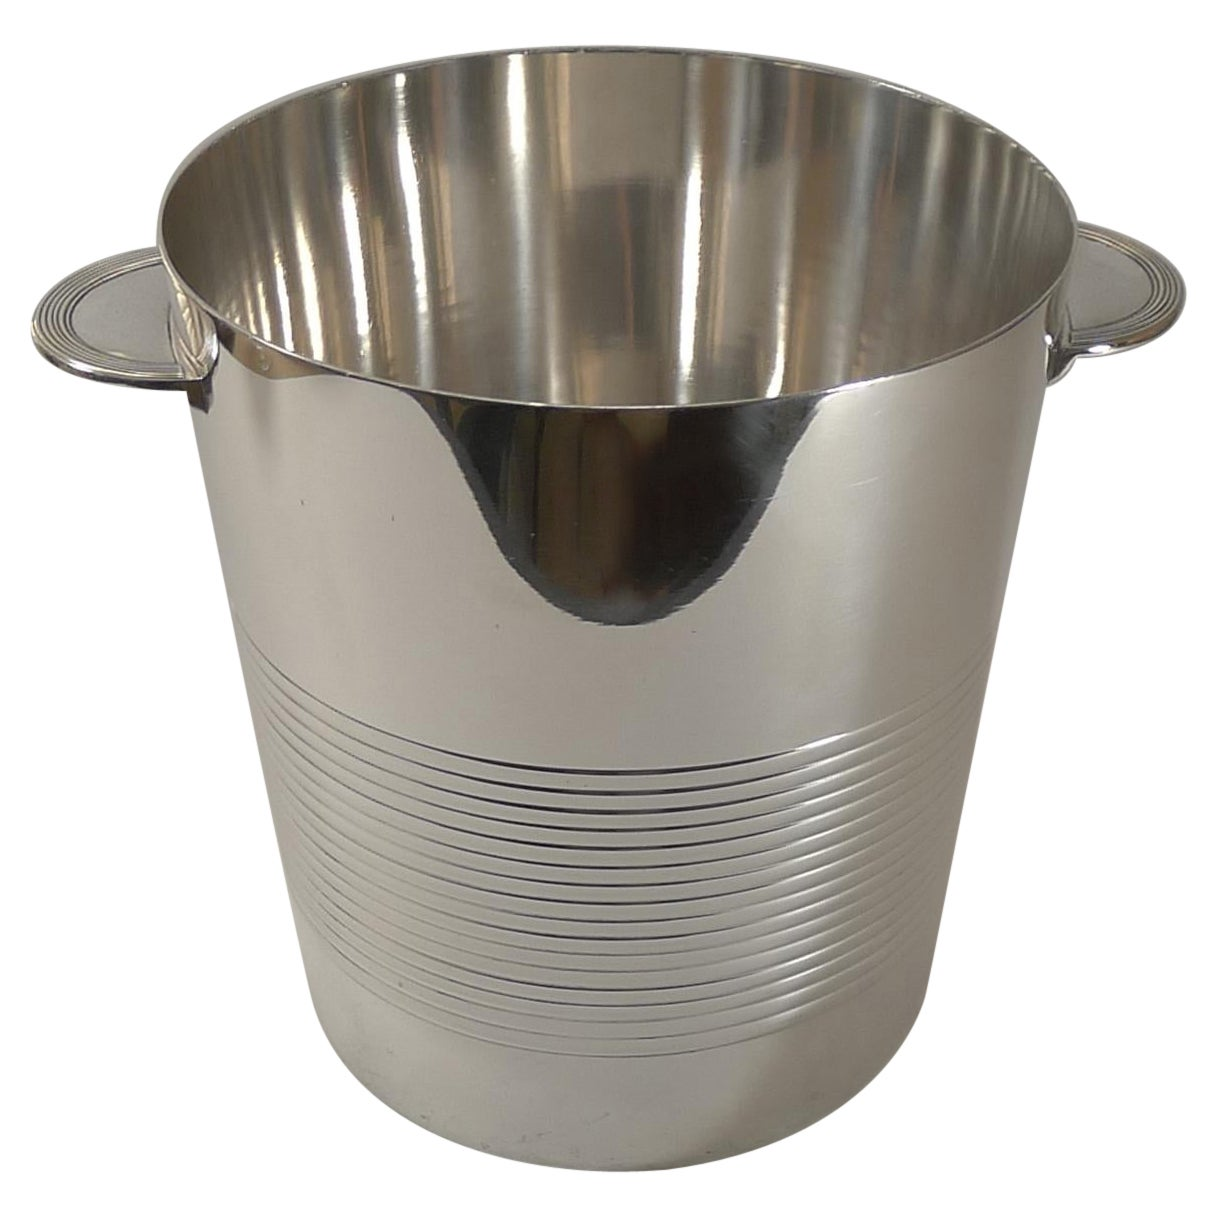 Luc Lanel for Christofle, Champagne Bucket / Wine Cooler, Vulcan c.1940